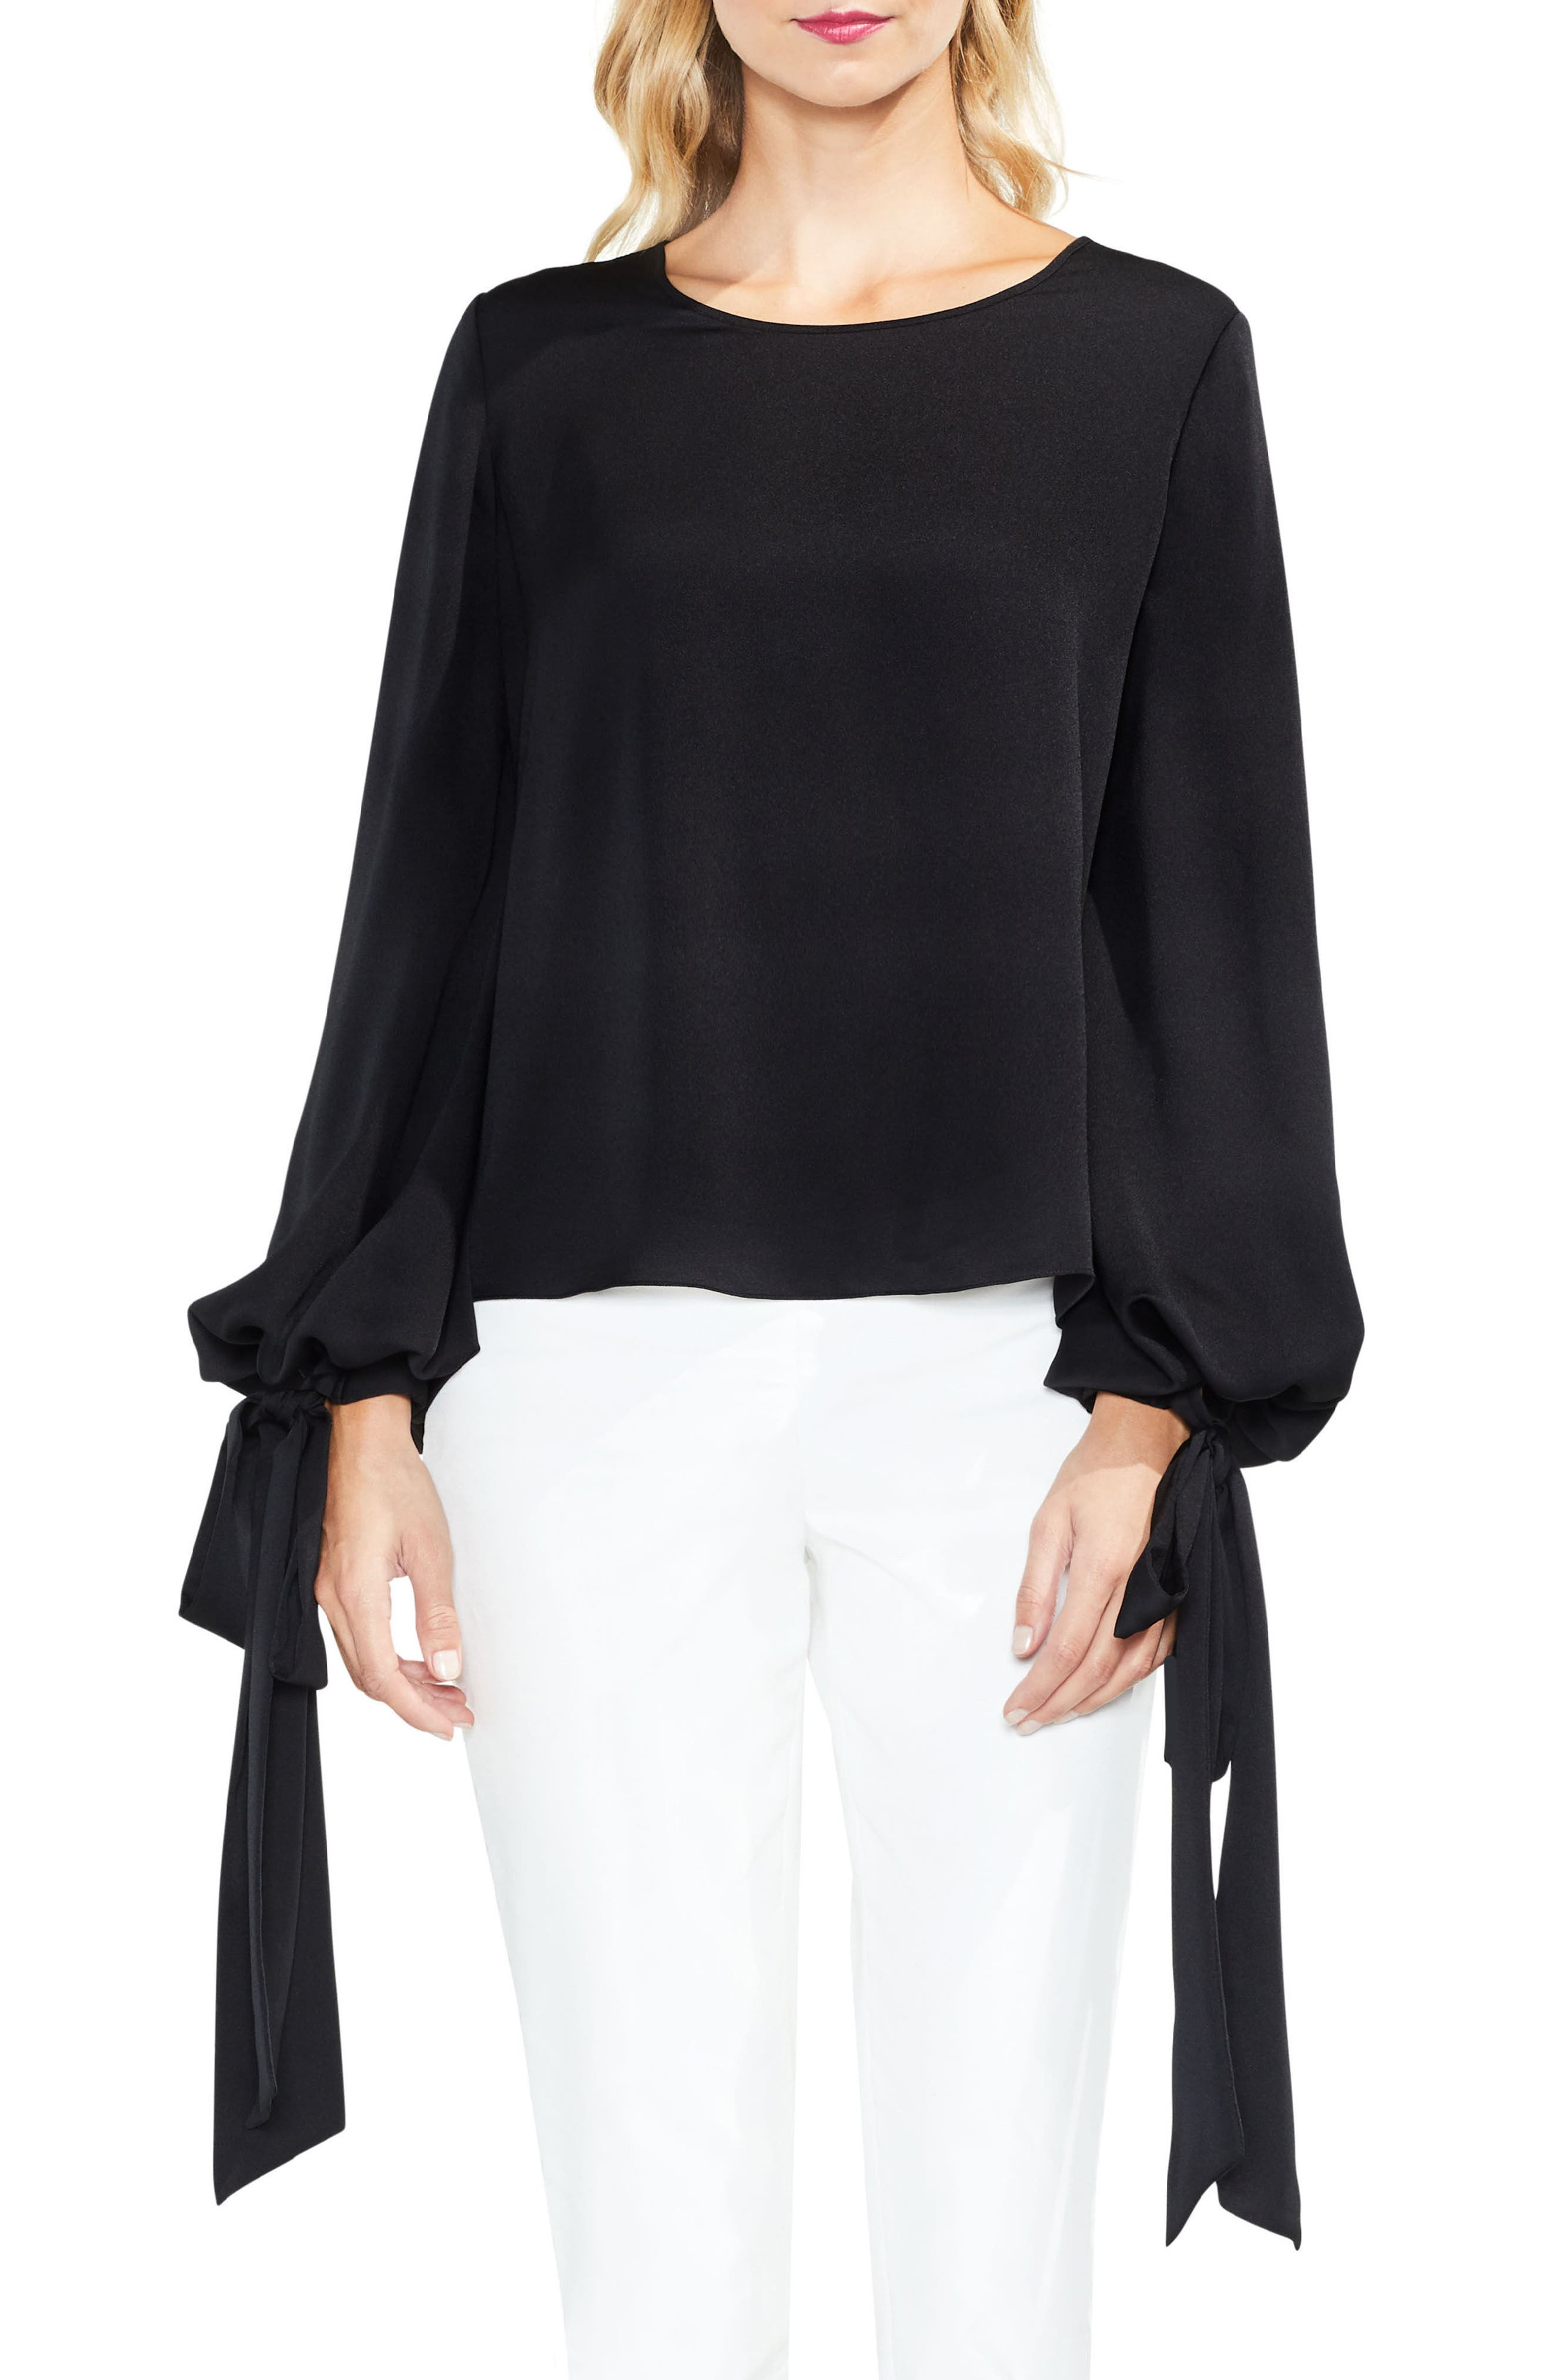 Alternate Image 1 Selected - Vince Camuto Tie Cuff Bubble Sleeve Blouse (Regular & Petite)